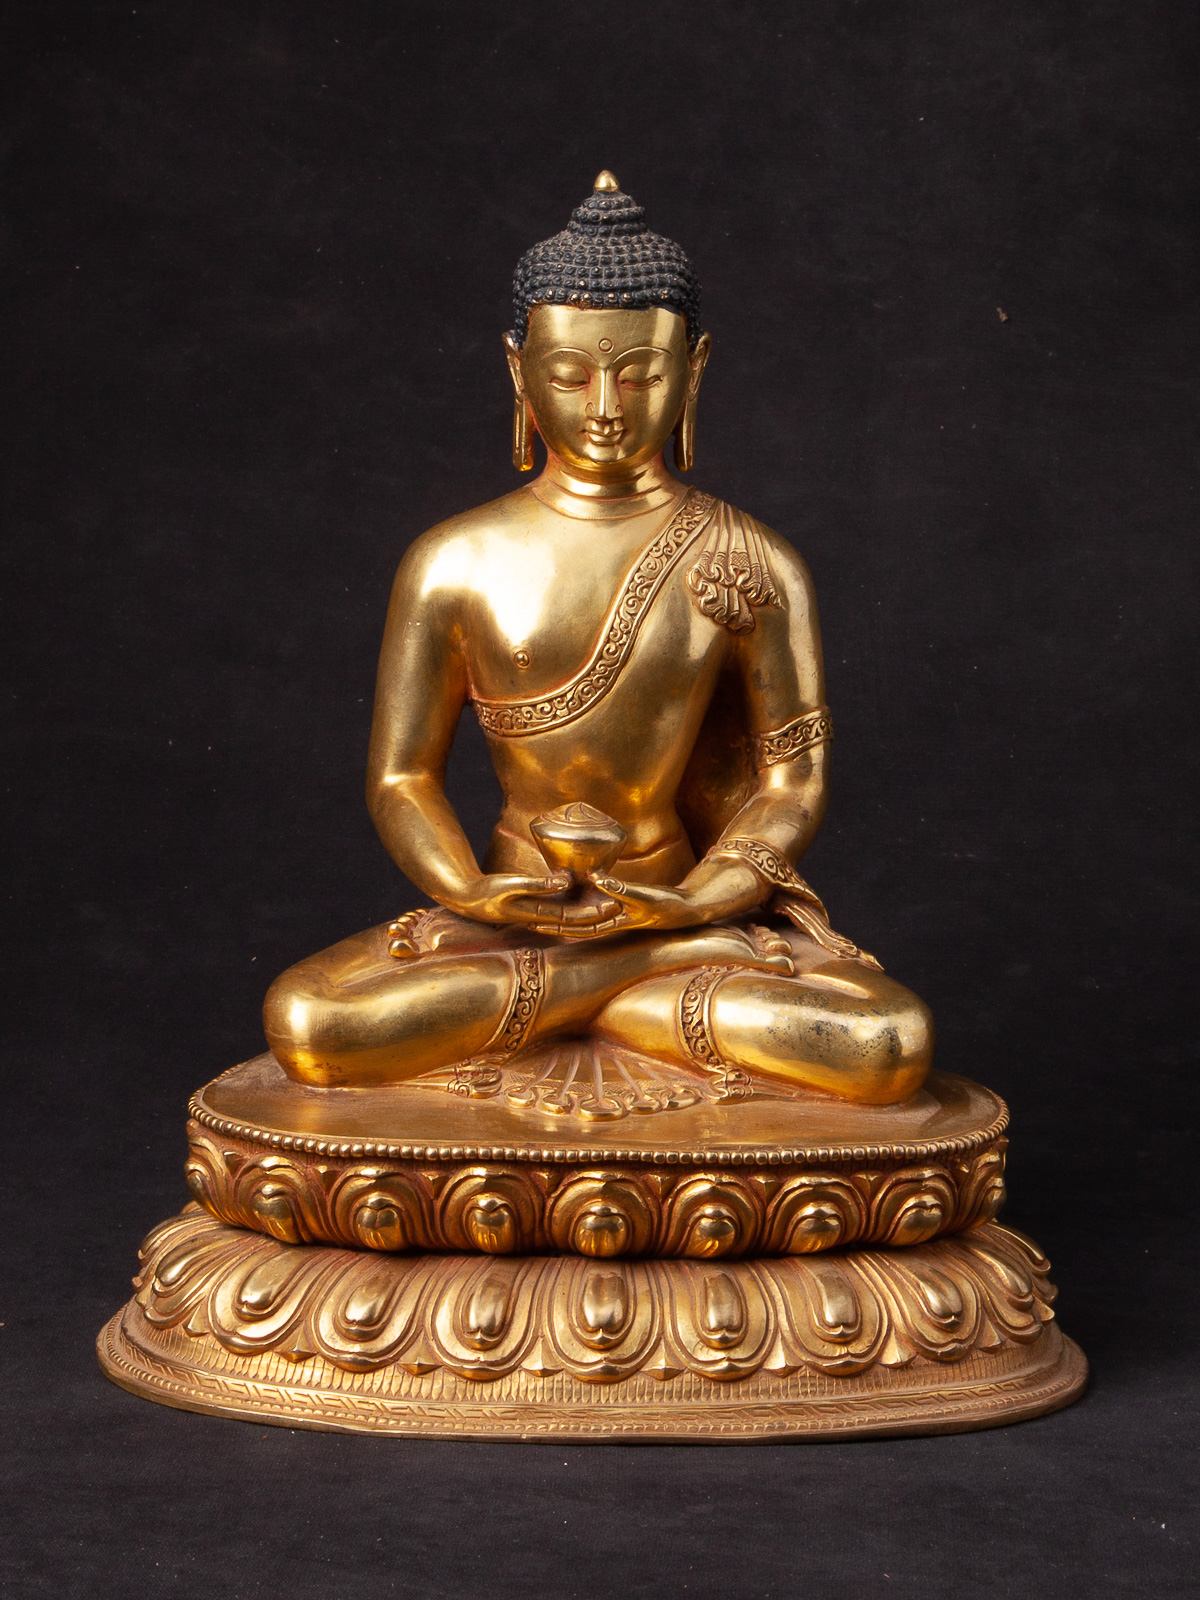 High quality Nepali Buddha statue from Nepal made from Bronze